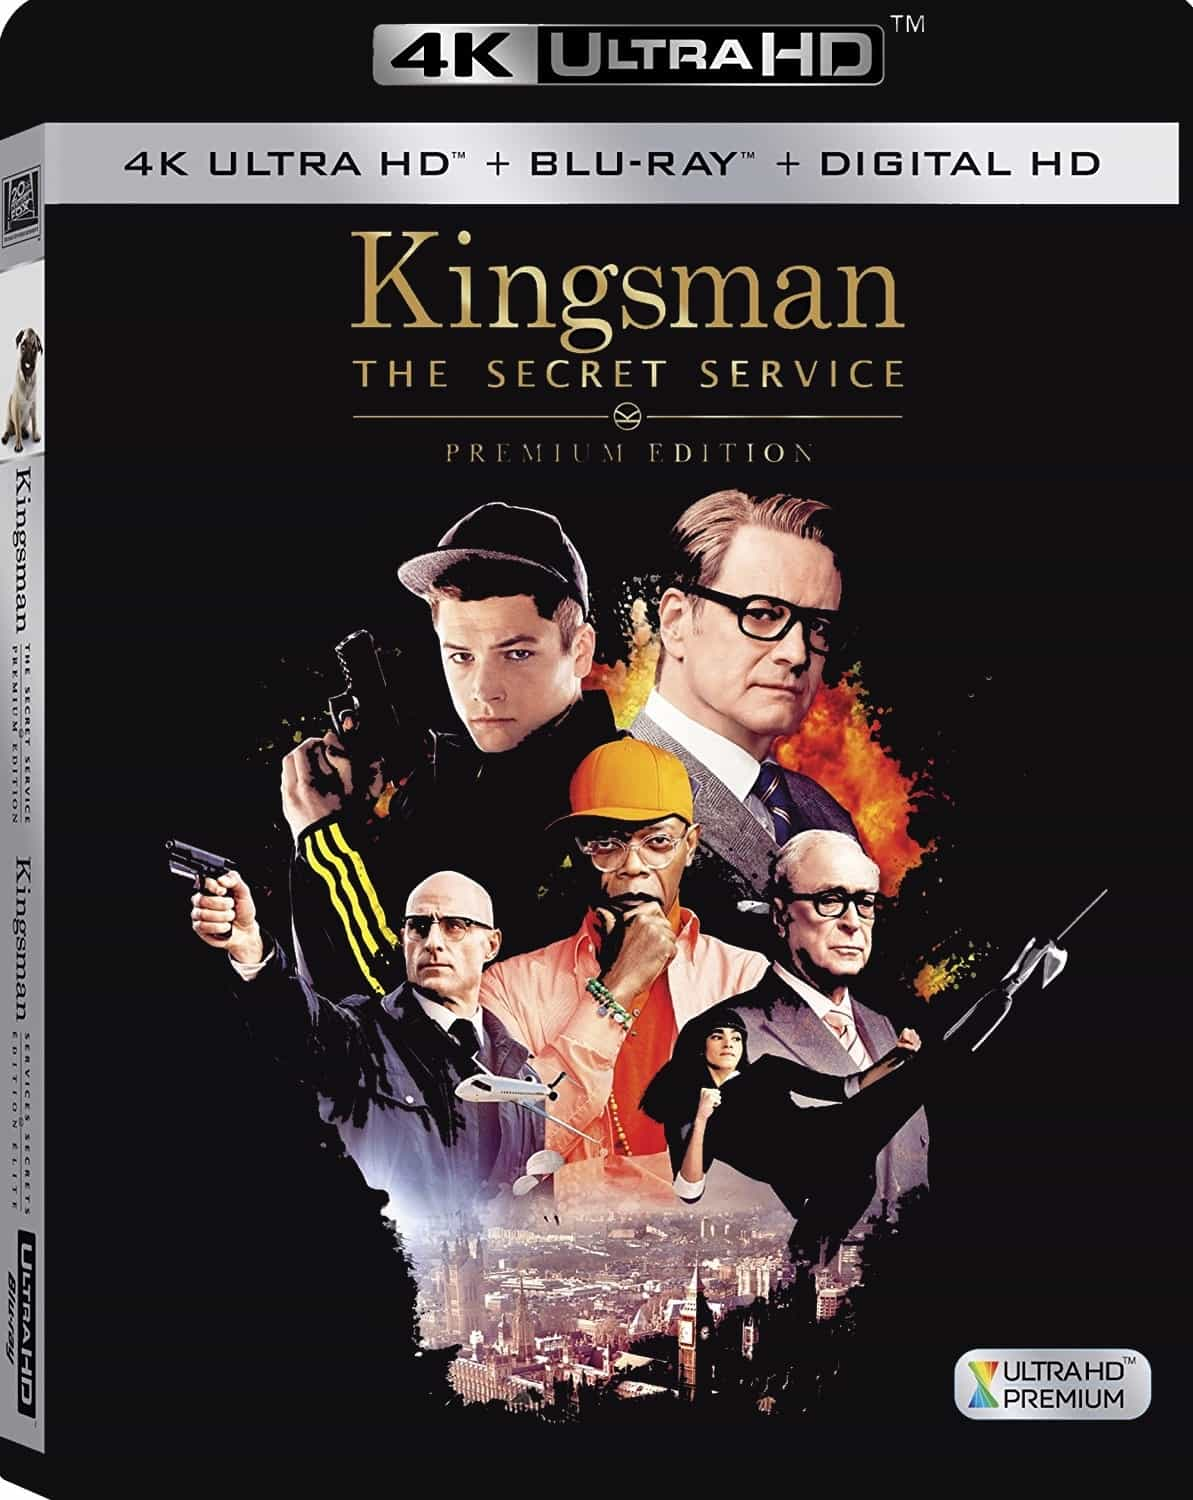 Kingsman: The Secret Service 4K 2014